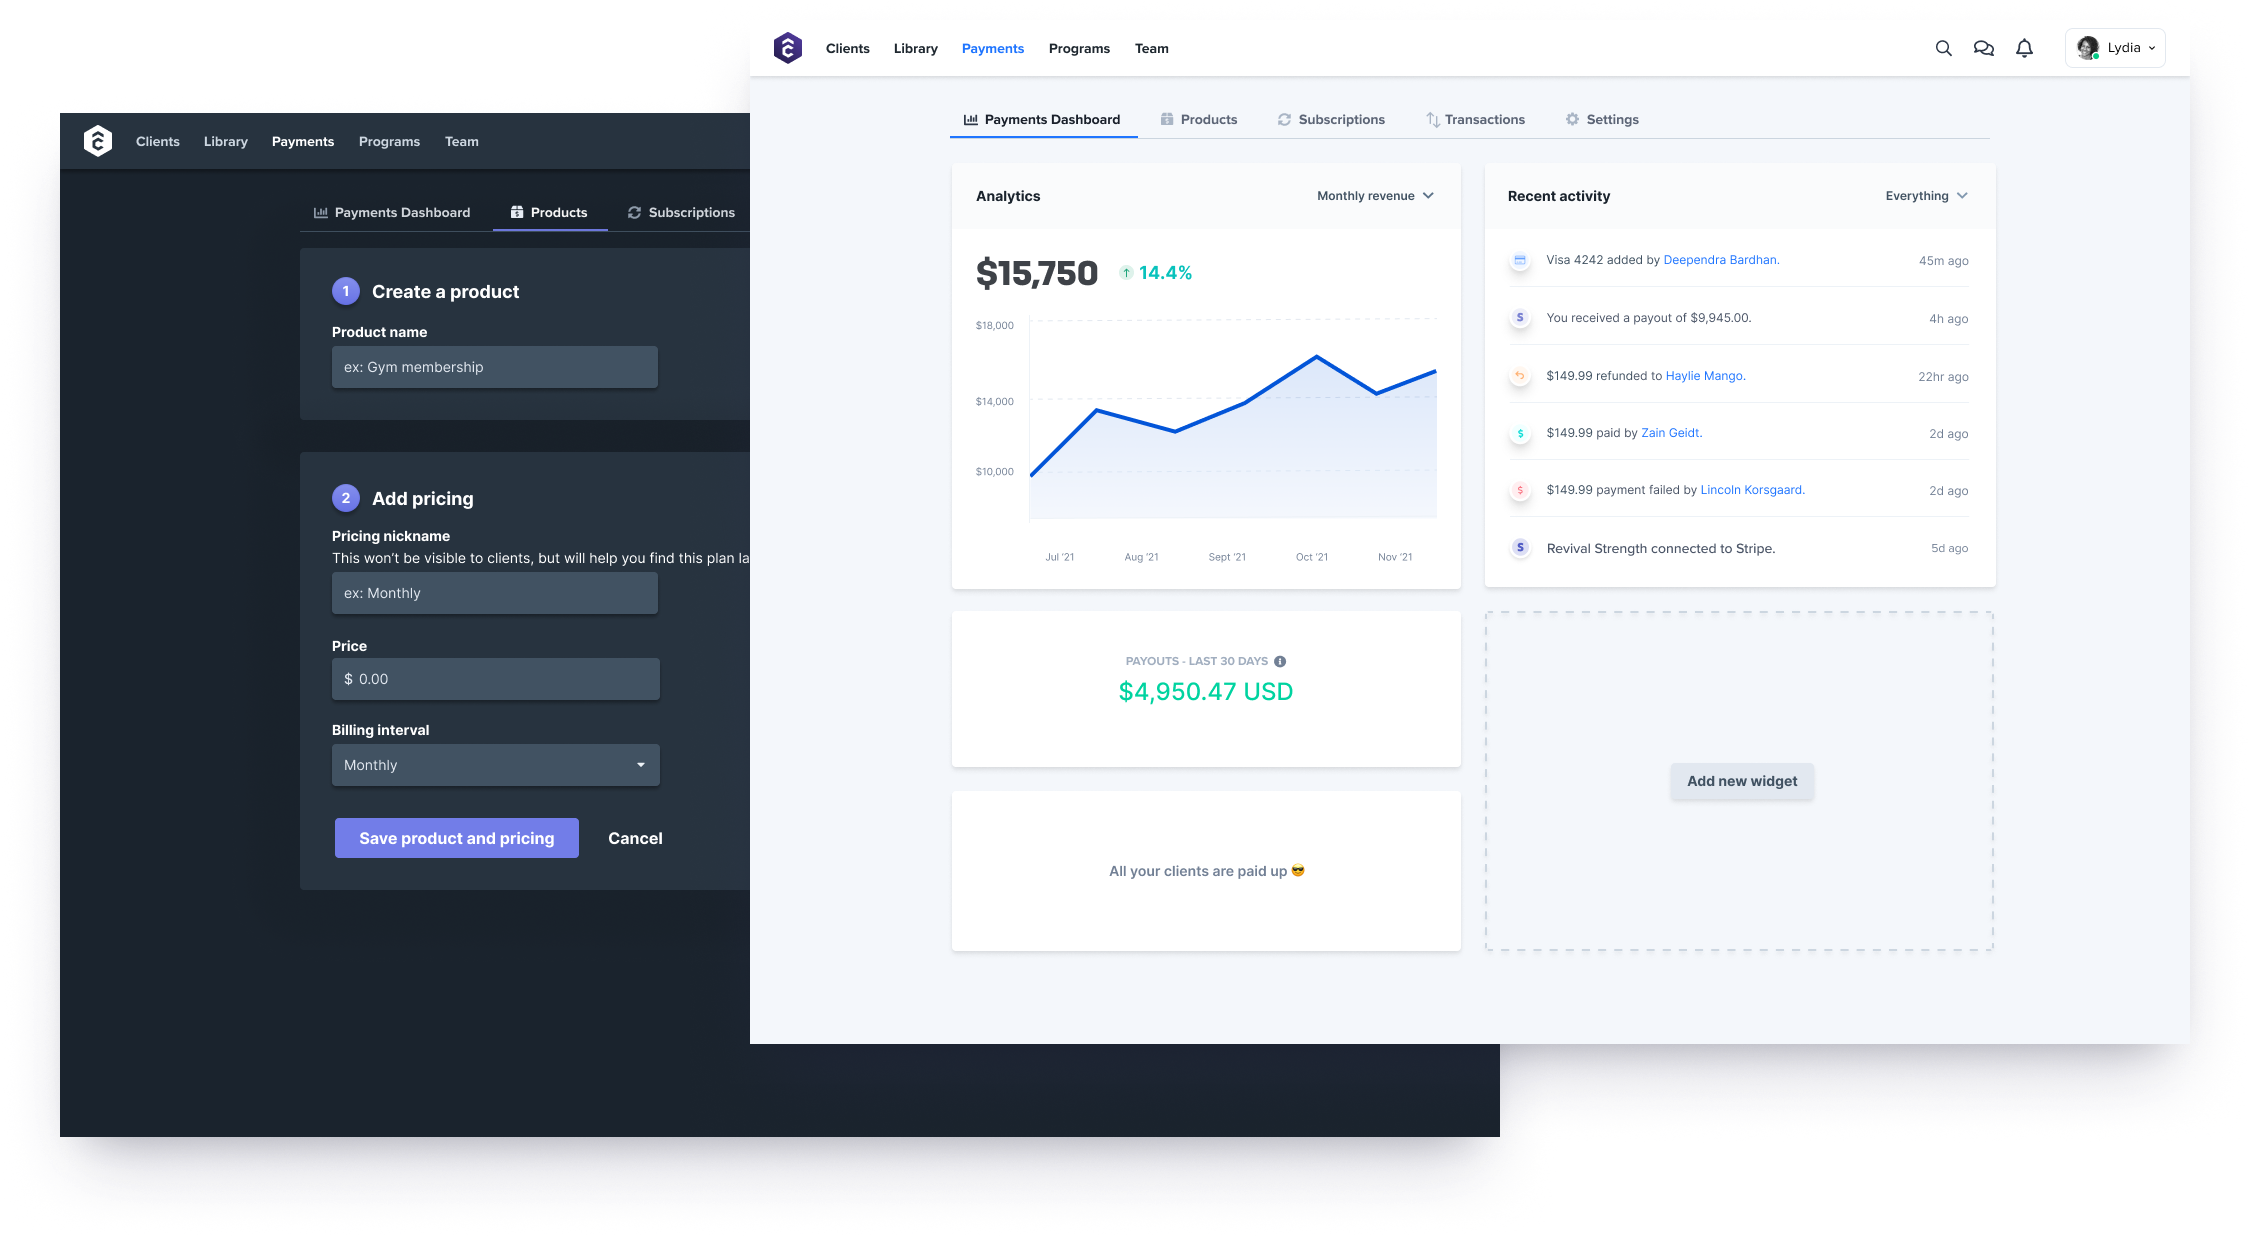 TrueCoach payments dashboard and product creation views